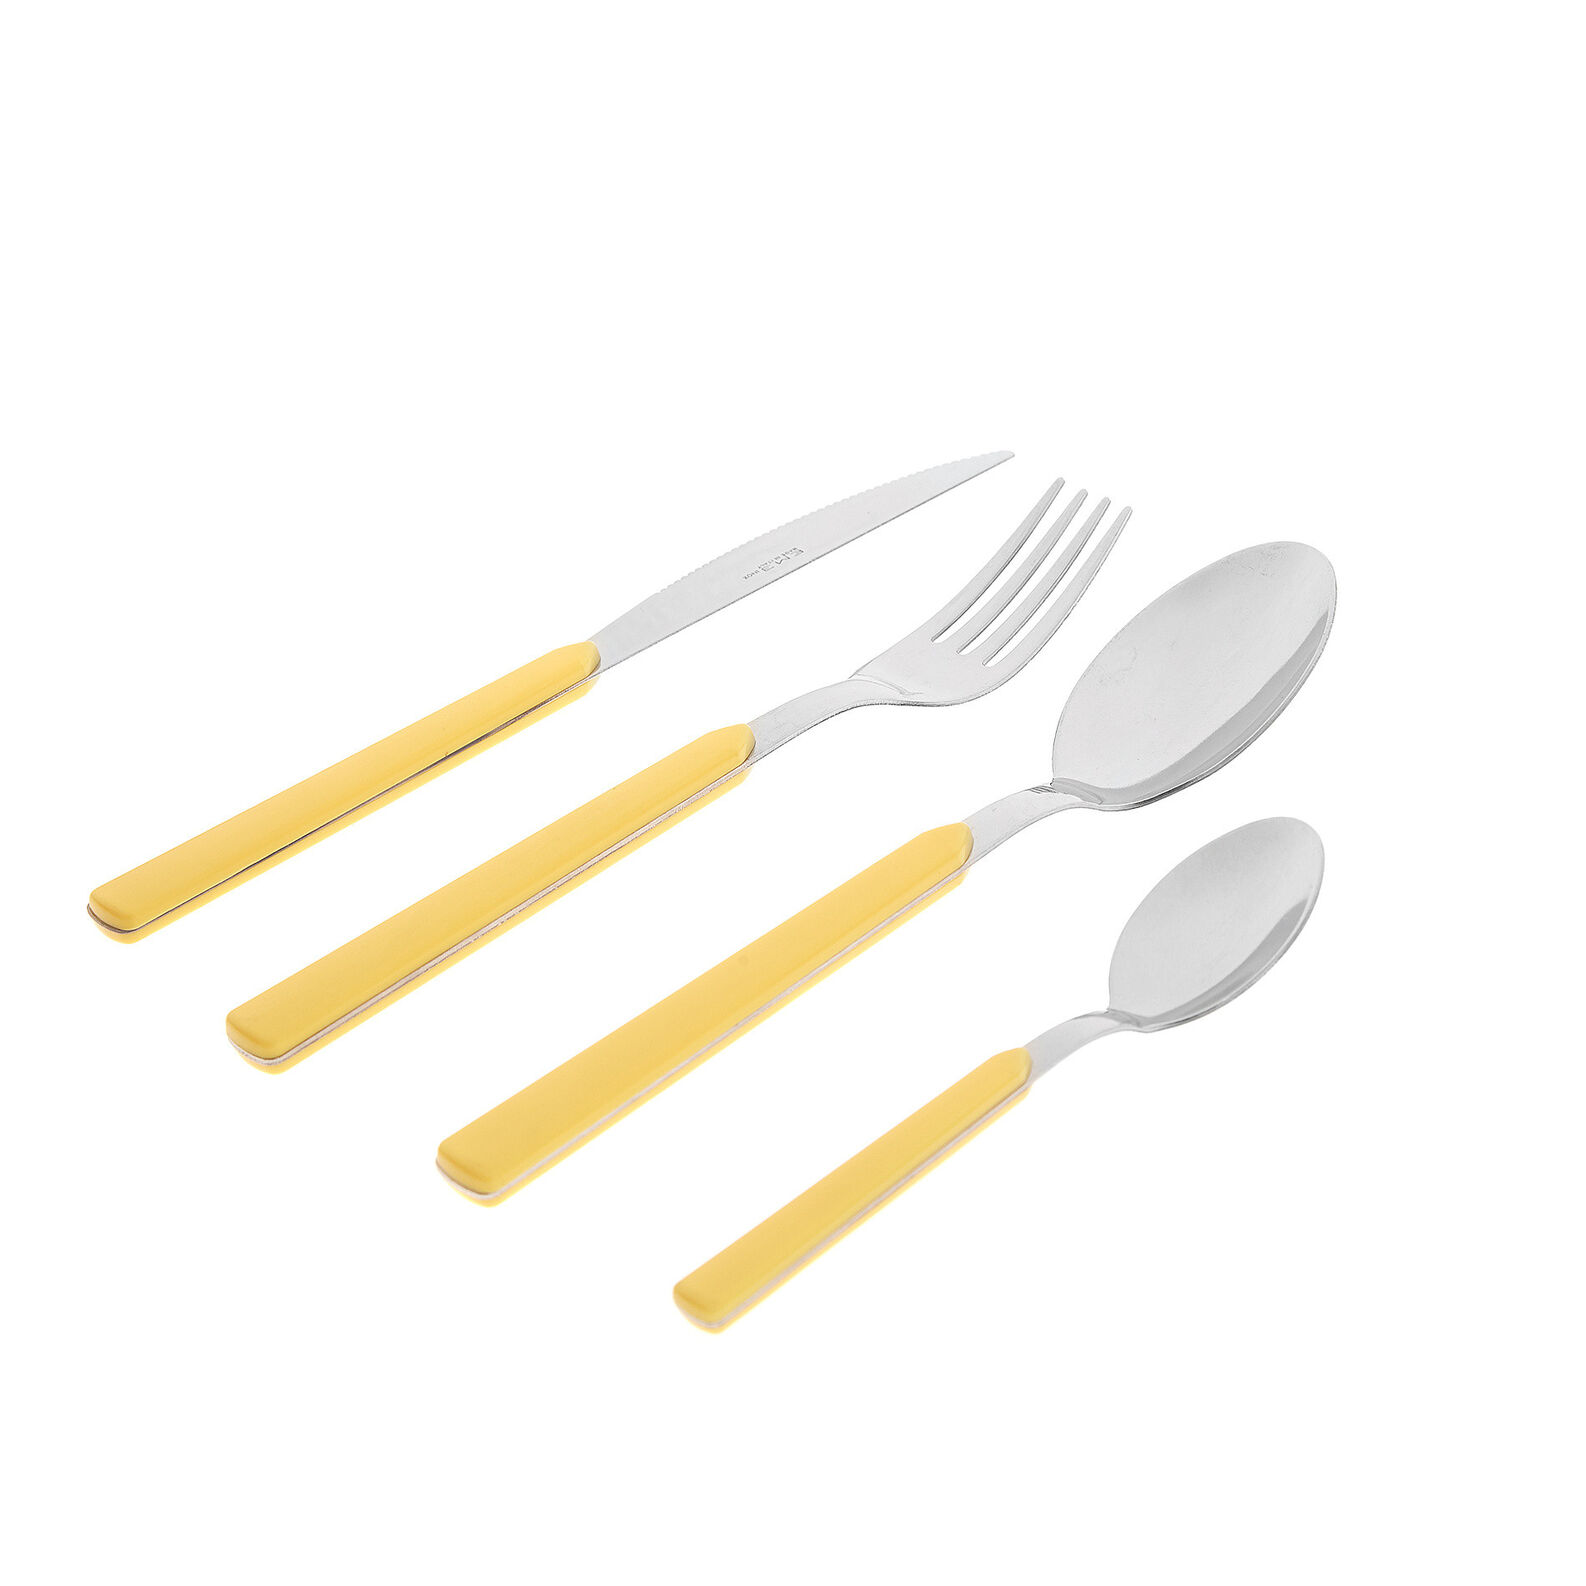 Set of 24 steel and plastic cutlery